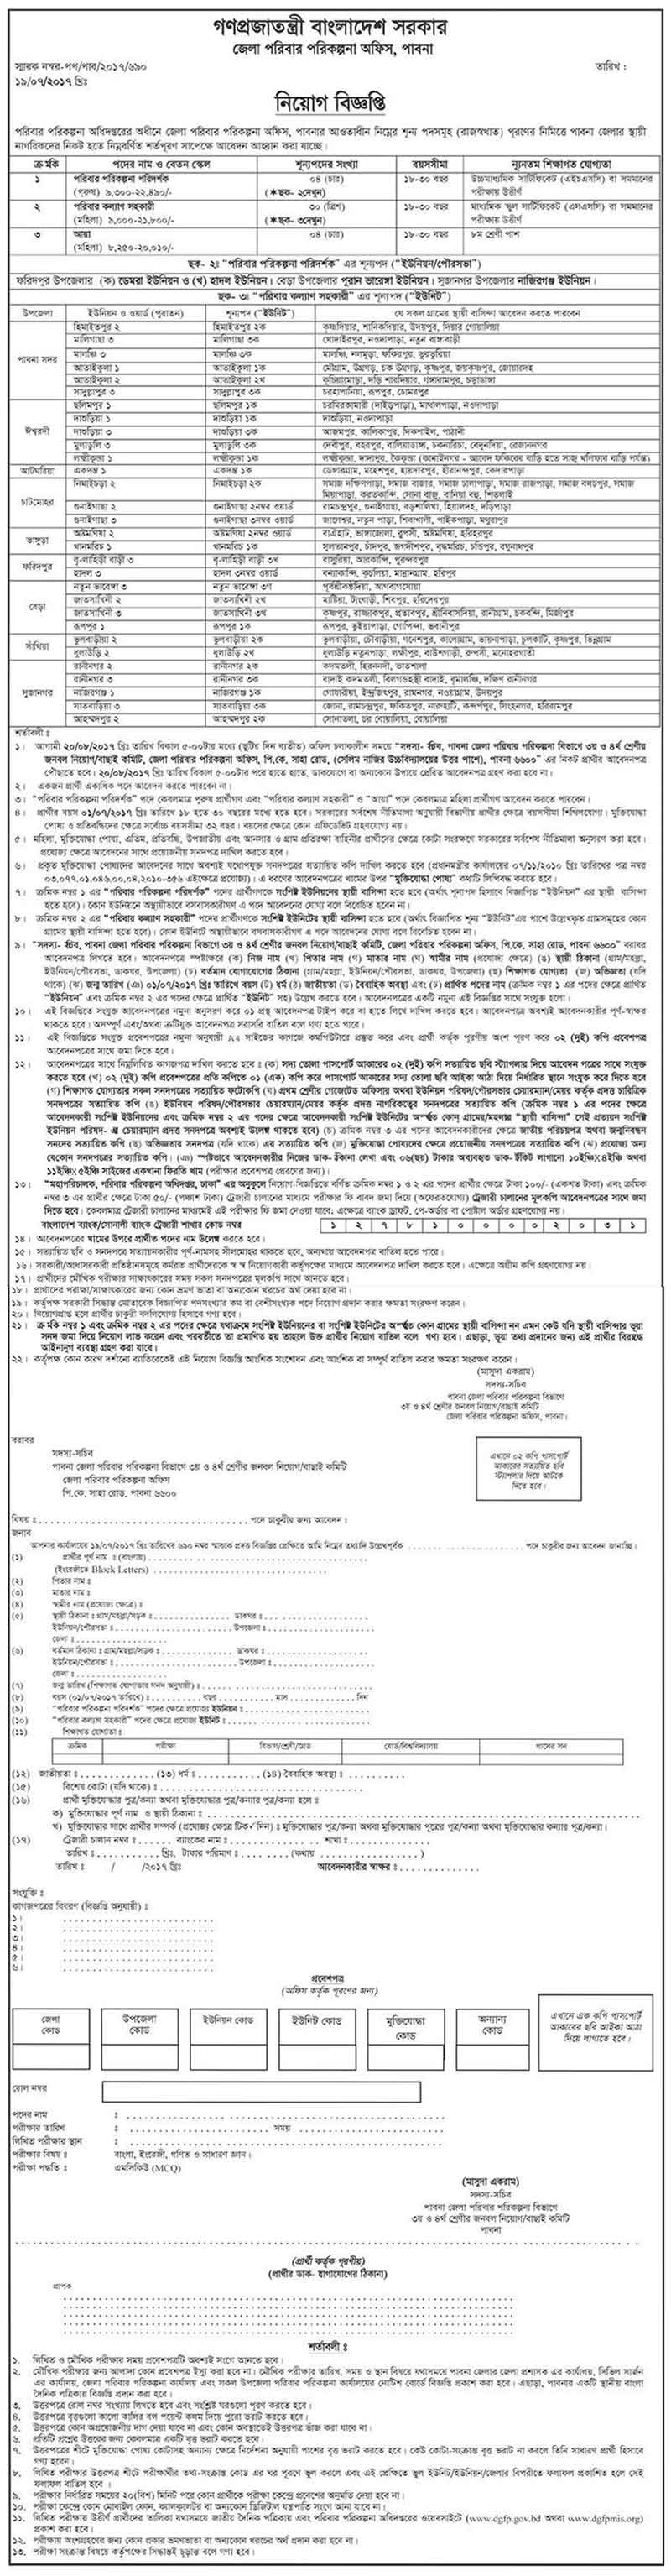 District family planning office comilla job circular 2017